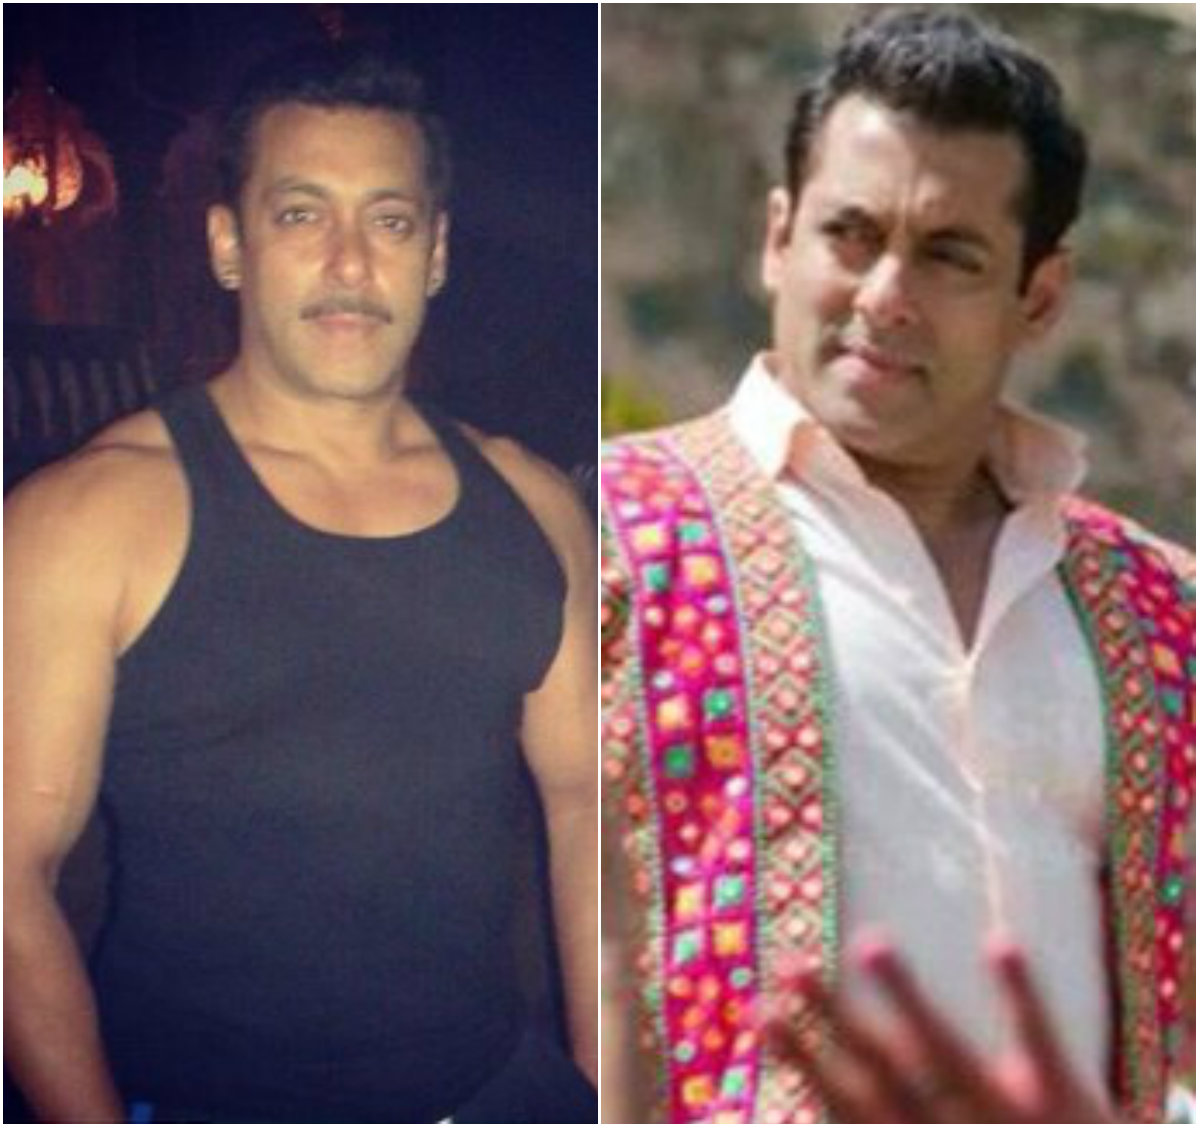 Just who do you think murdered Salman Khan?